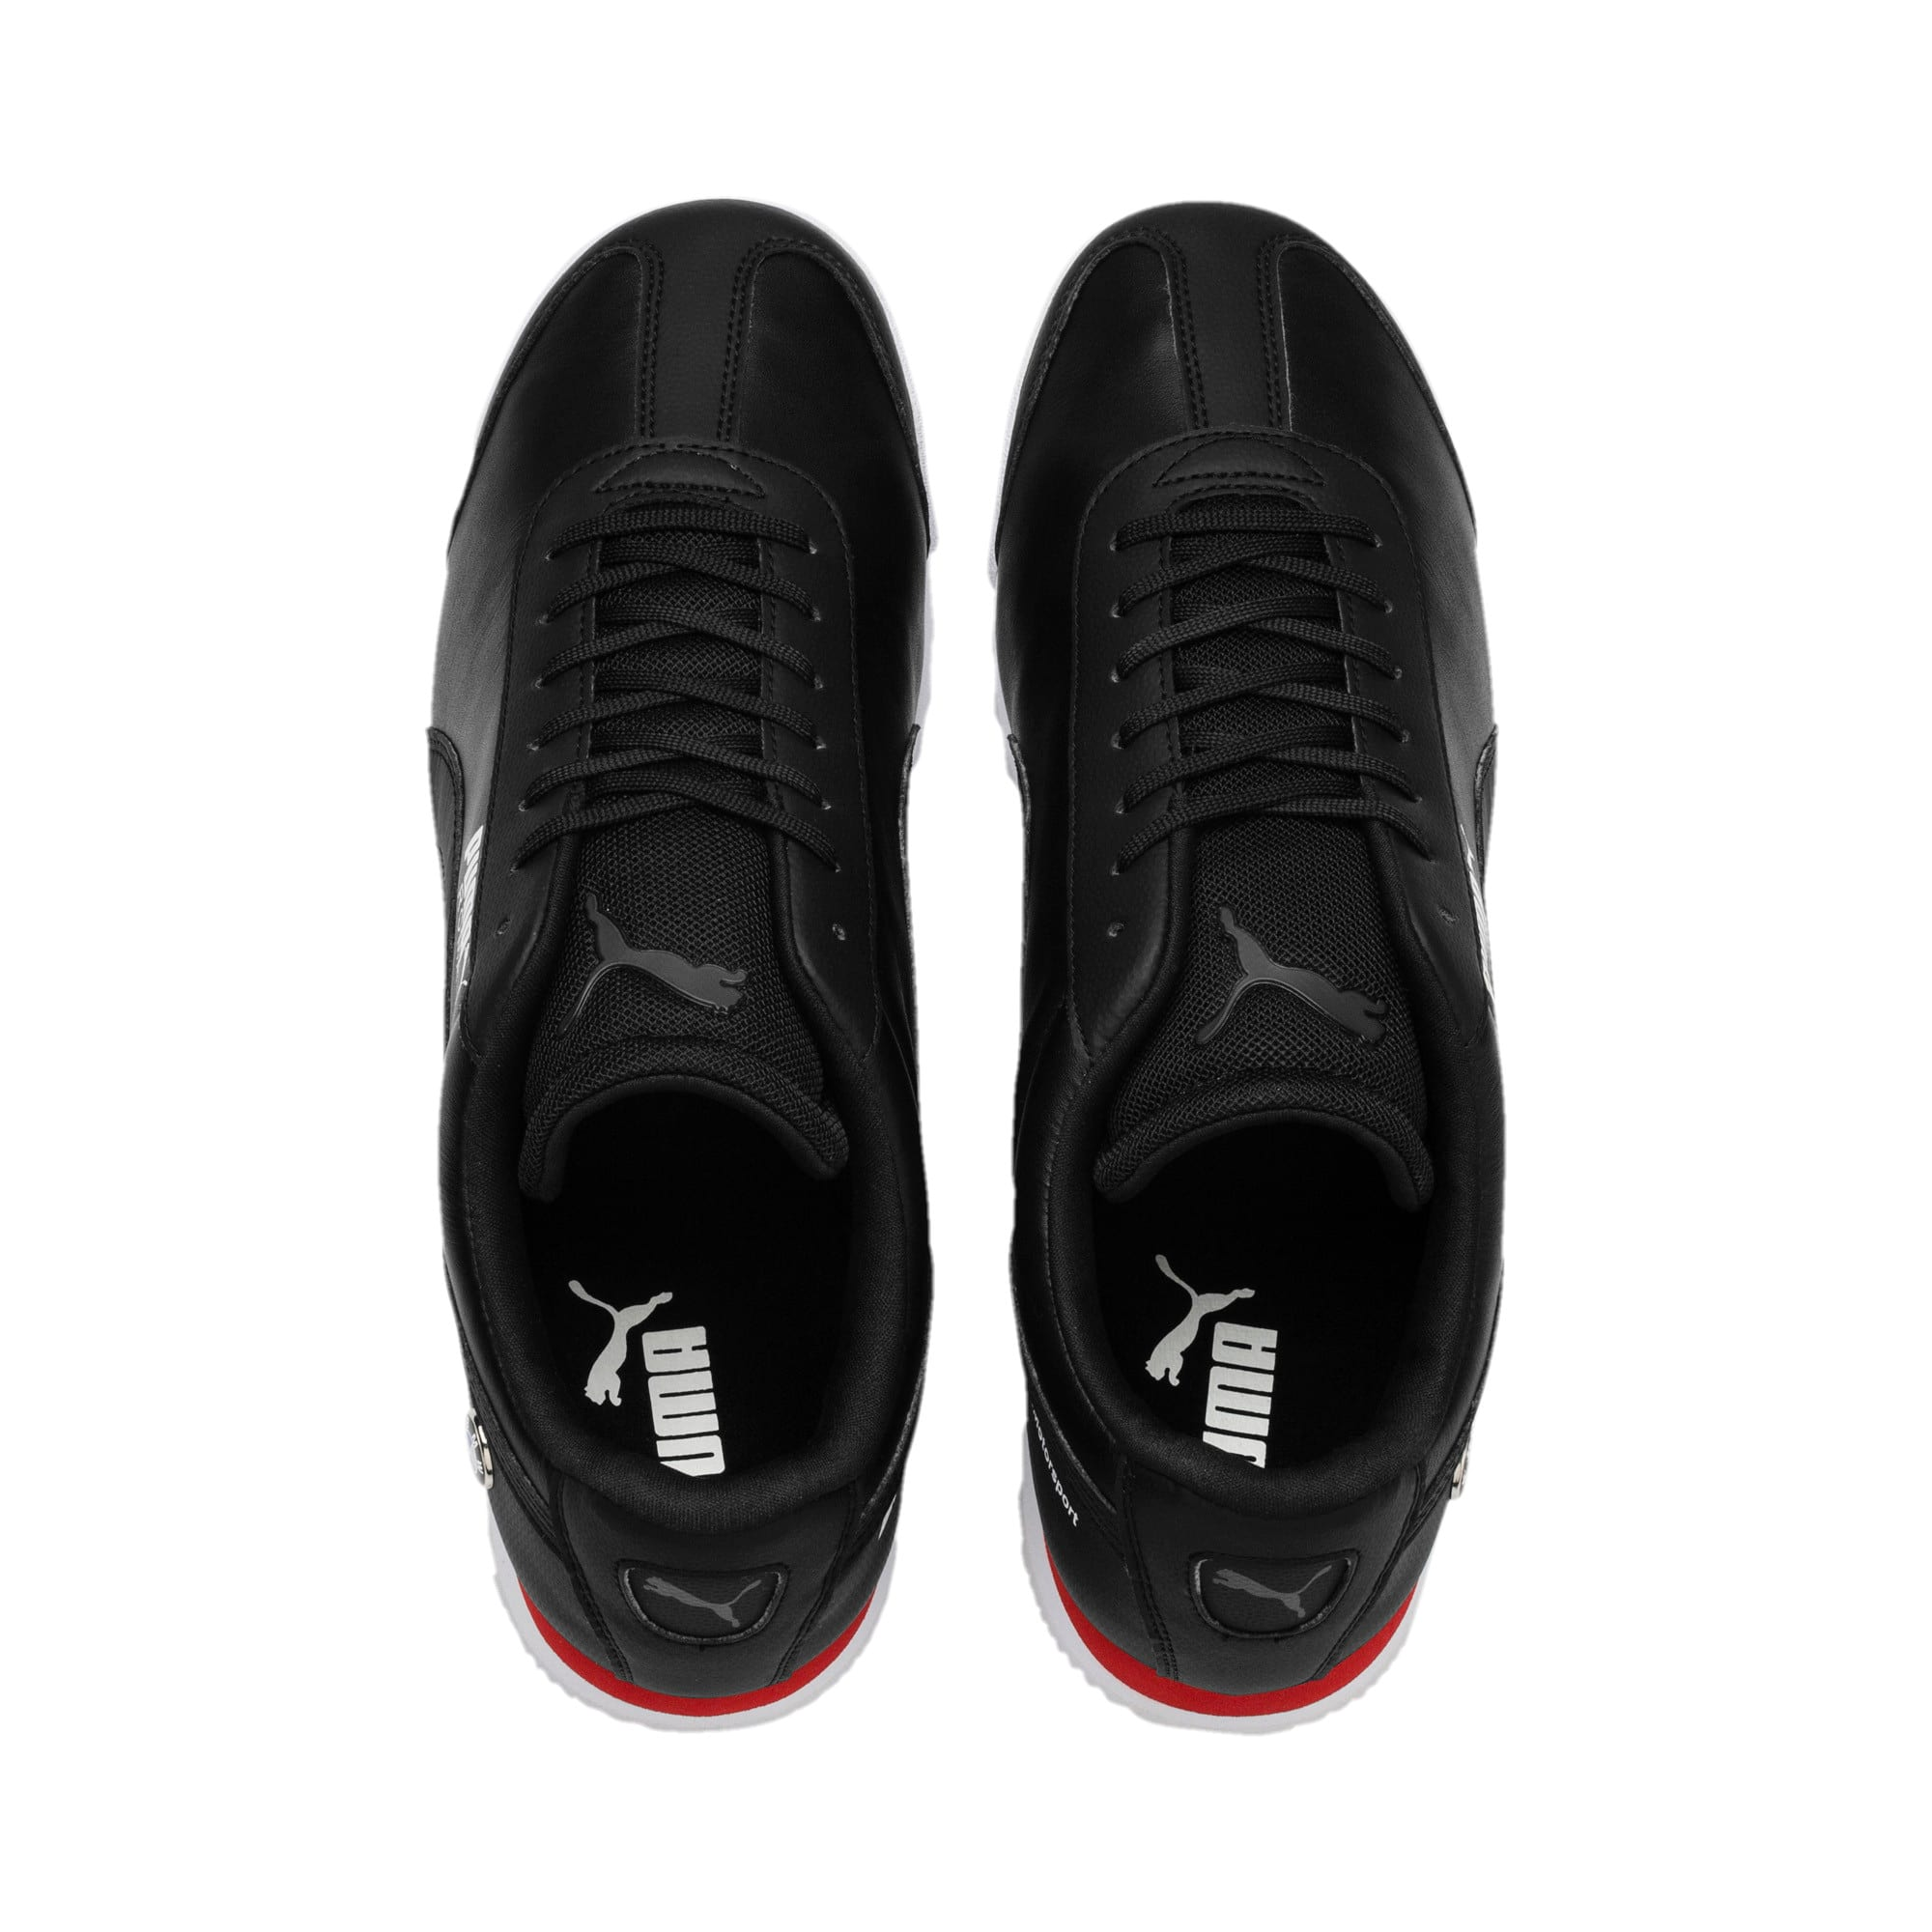 Thumbnail 6 of BMW MMS Roma Men's Trainers, Puma Black-Puma Black, medium